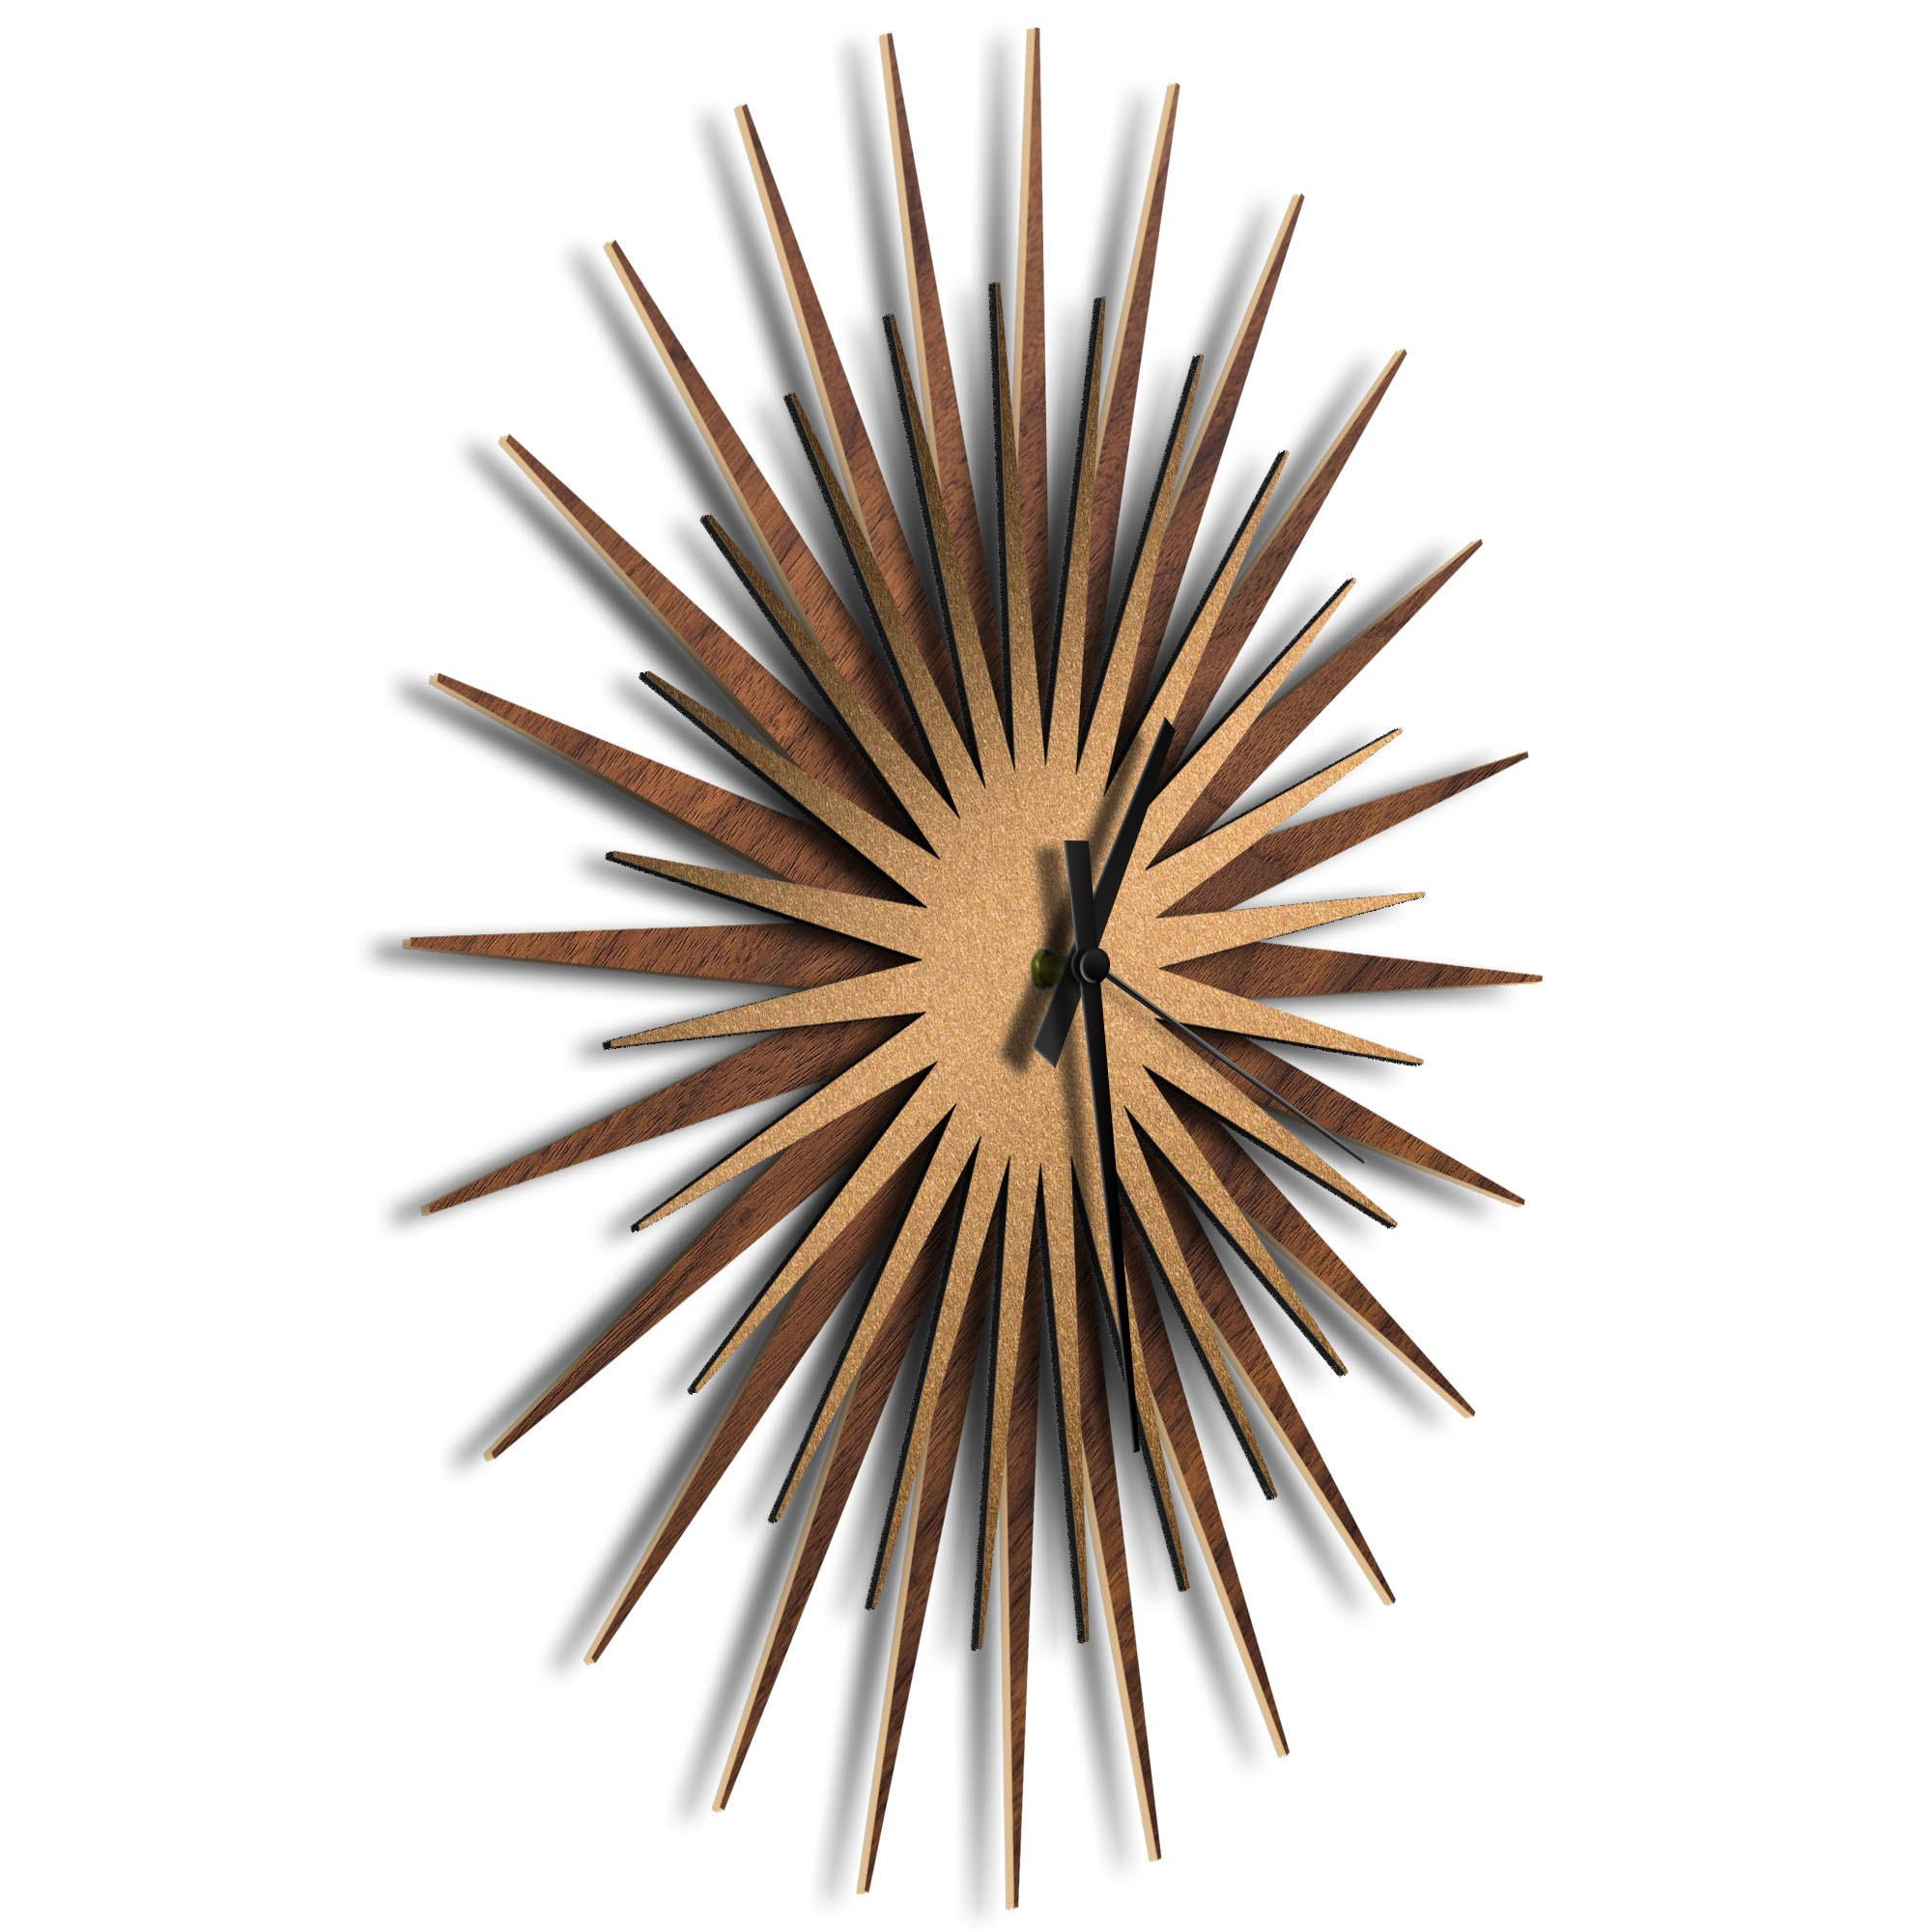 Atomic Era Clock Walnut Bronze Black by Adam Schwoeppe - Mid-Century Modern Clock on Brushed Walnut Polymetal - Image 2